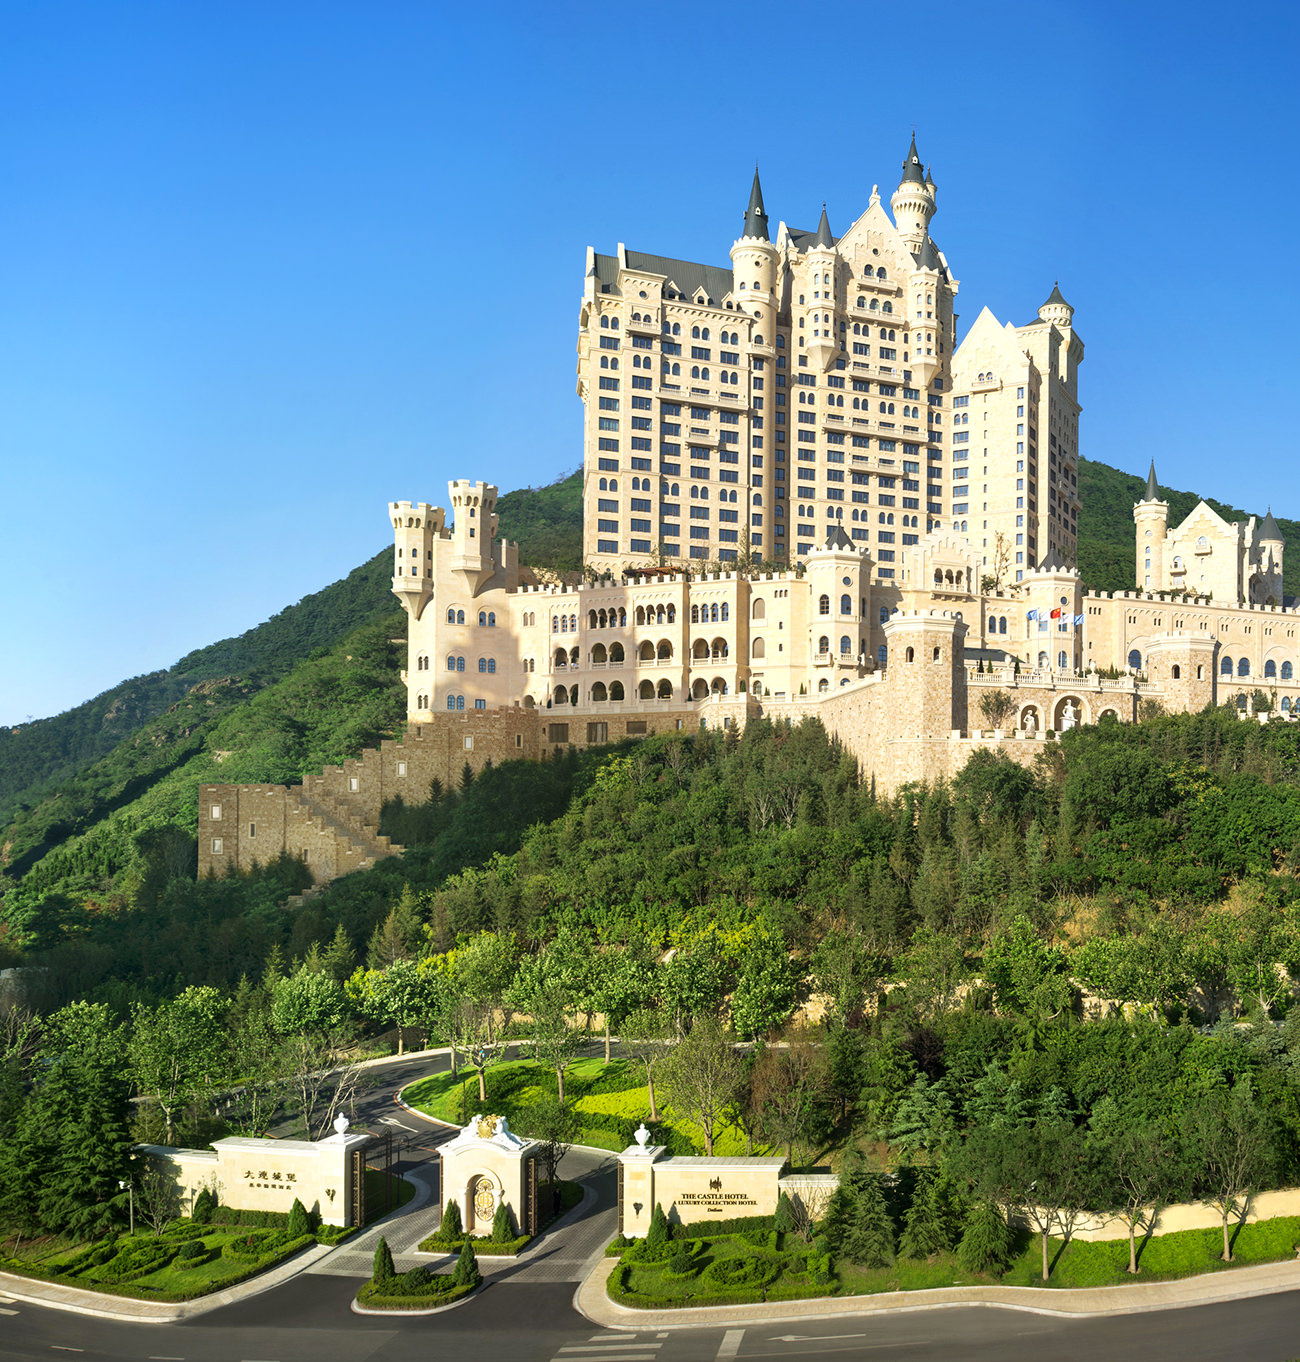 the-Castle-Hotel-a-Luxury-Collection-Hotel-Dalian-5